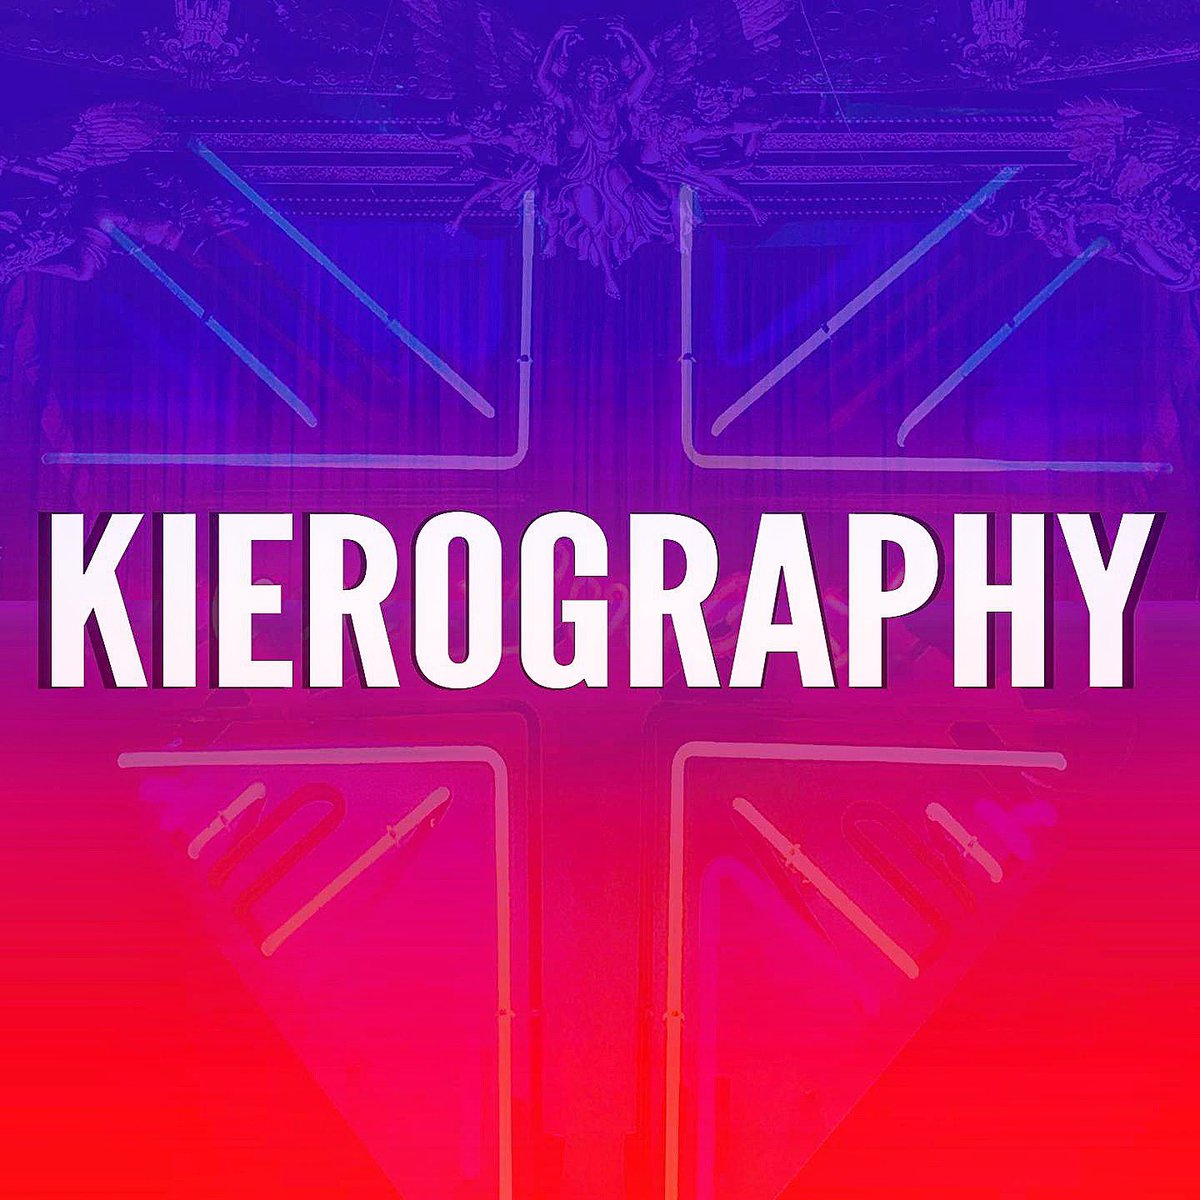 Looks like we're doing it...! If you're on Facebook give us a follow! Website coming soon! #Kierography #photography #photograph #selfemployed #freelance @ExcludedUK https://t.co/yvGWoJpH9I https://t.co/mQNhlmNhtc